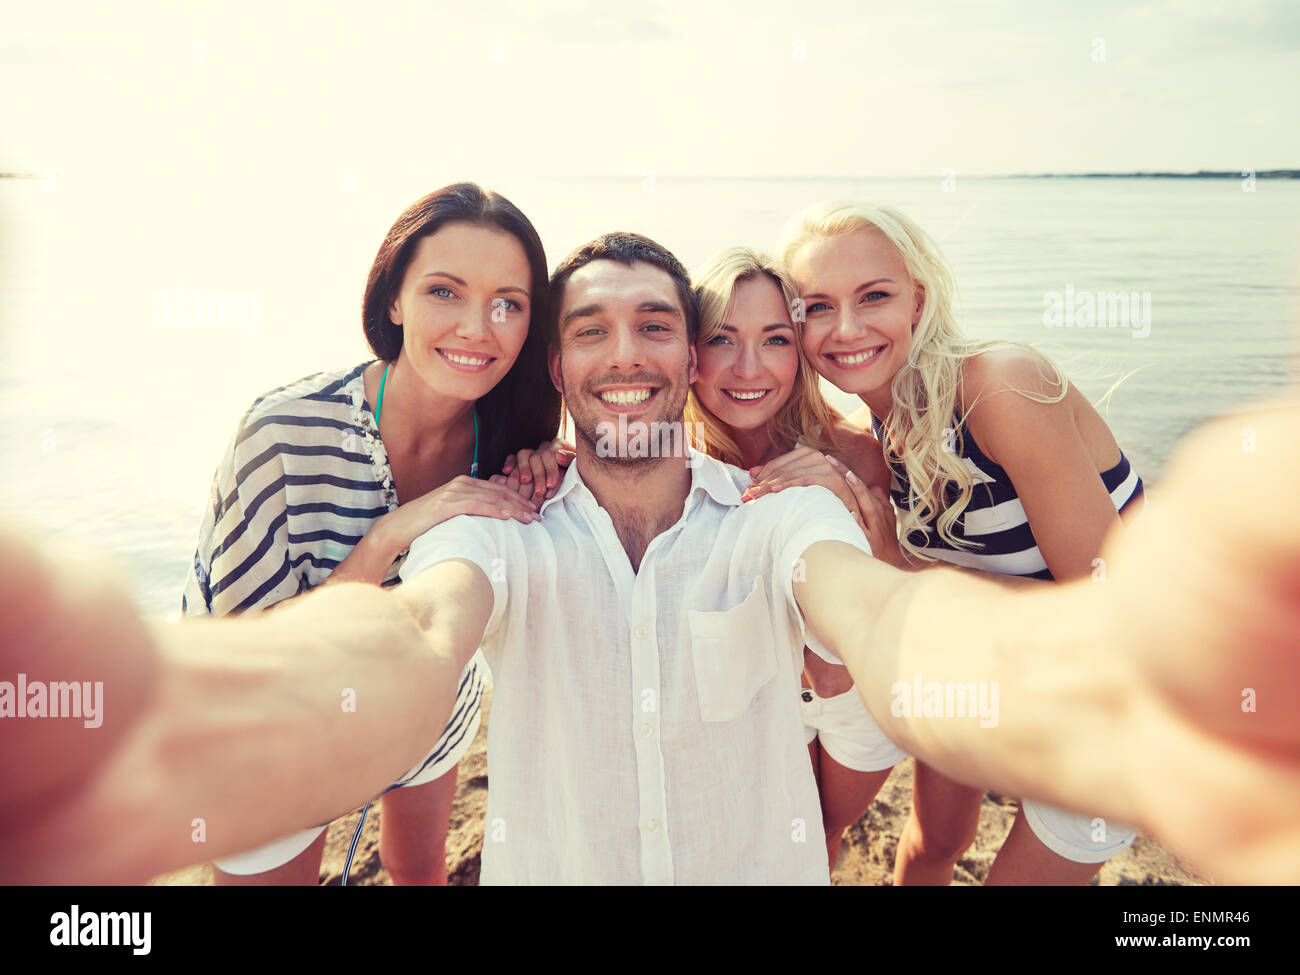 happy friends on beach and taking selfie - Stock Image